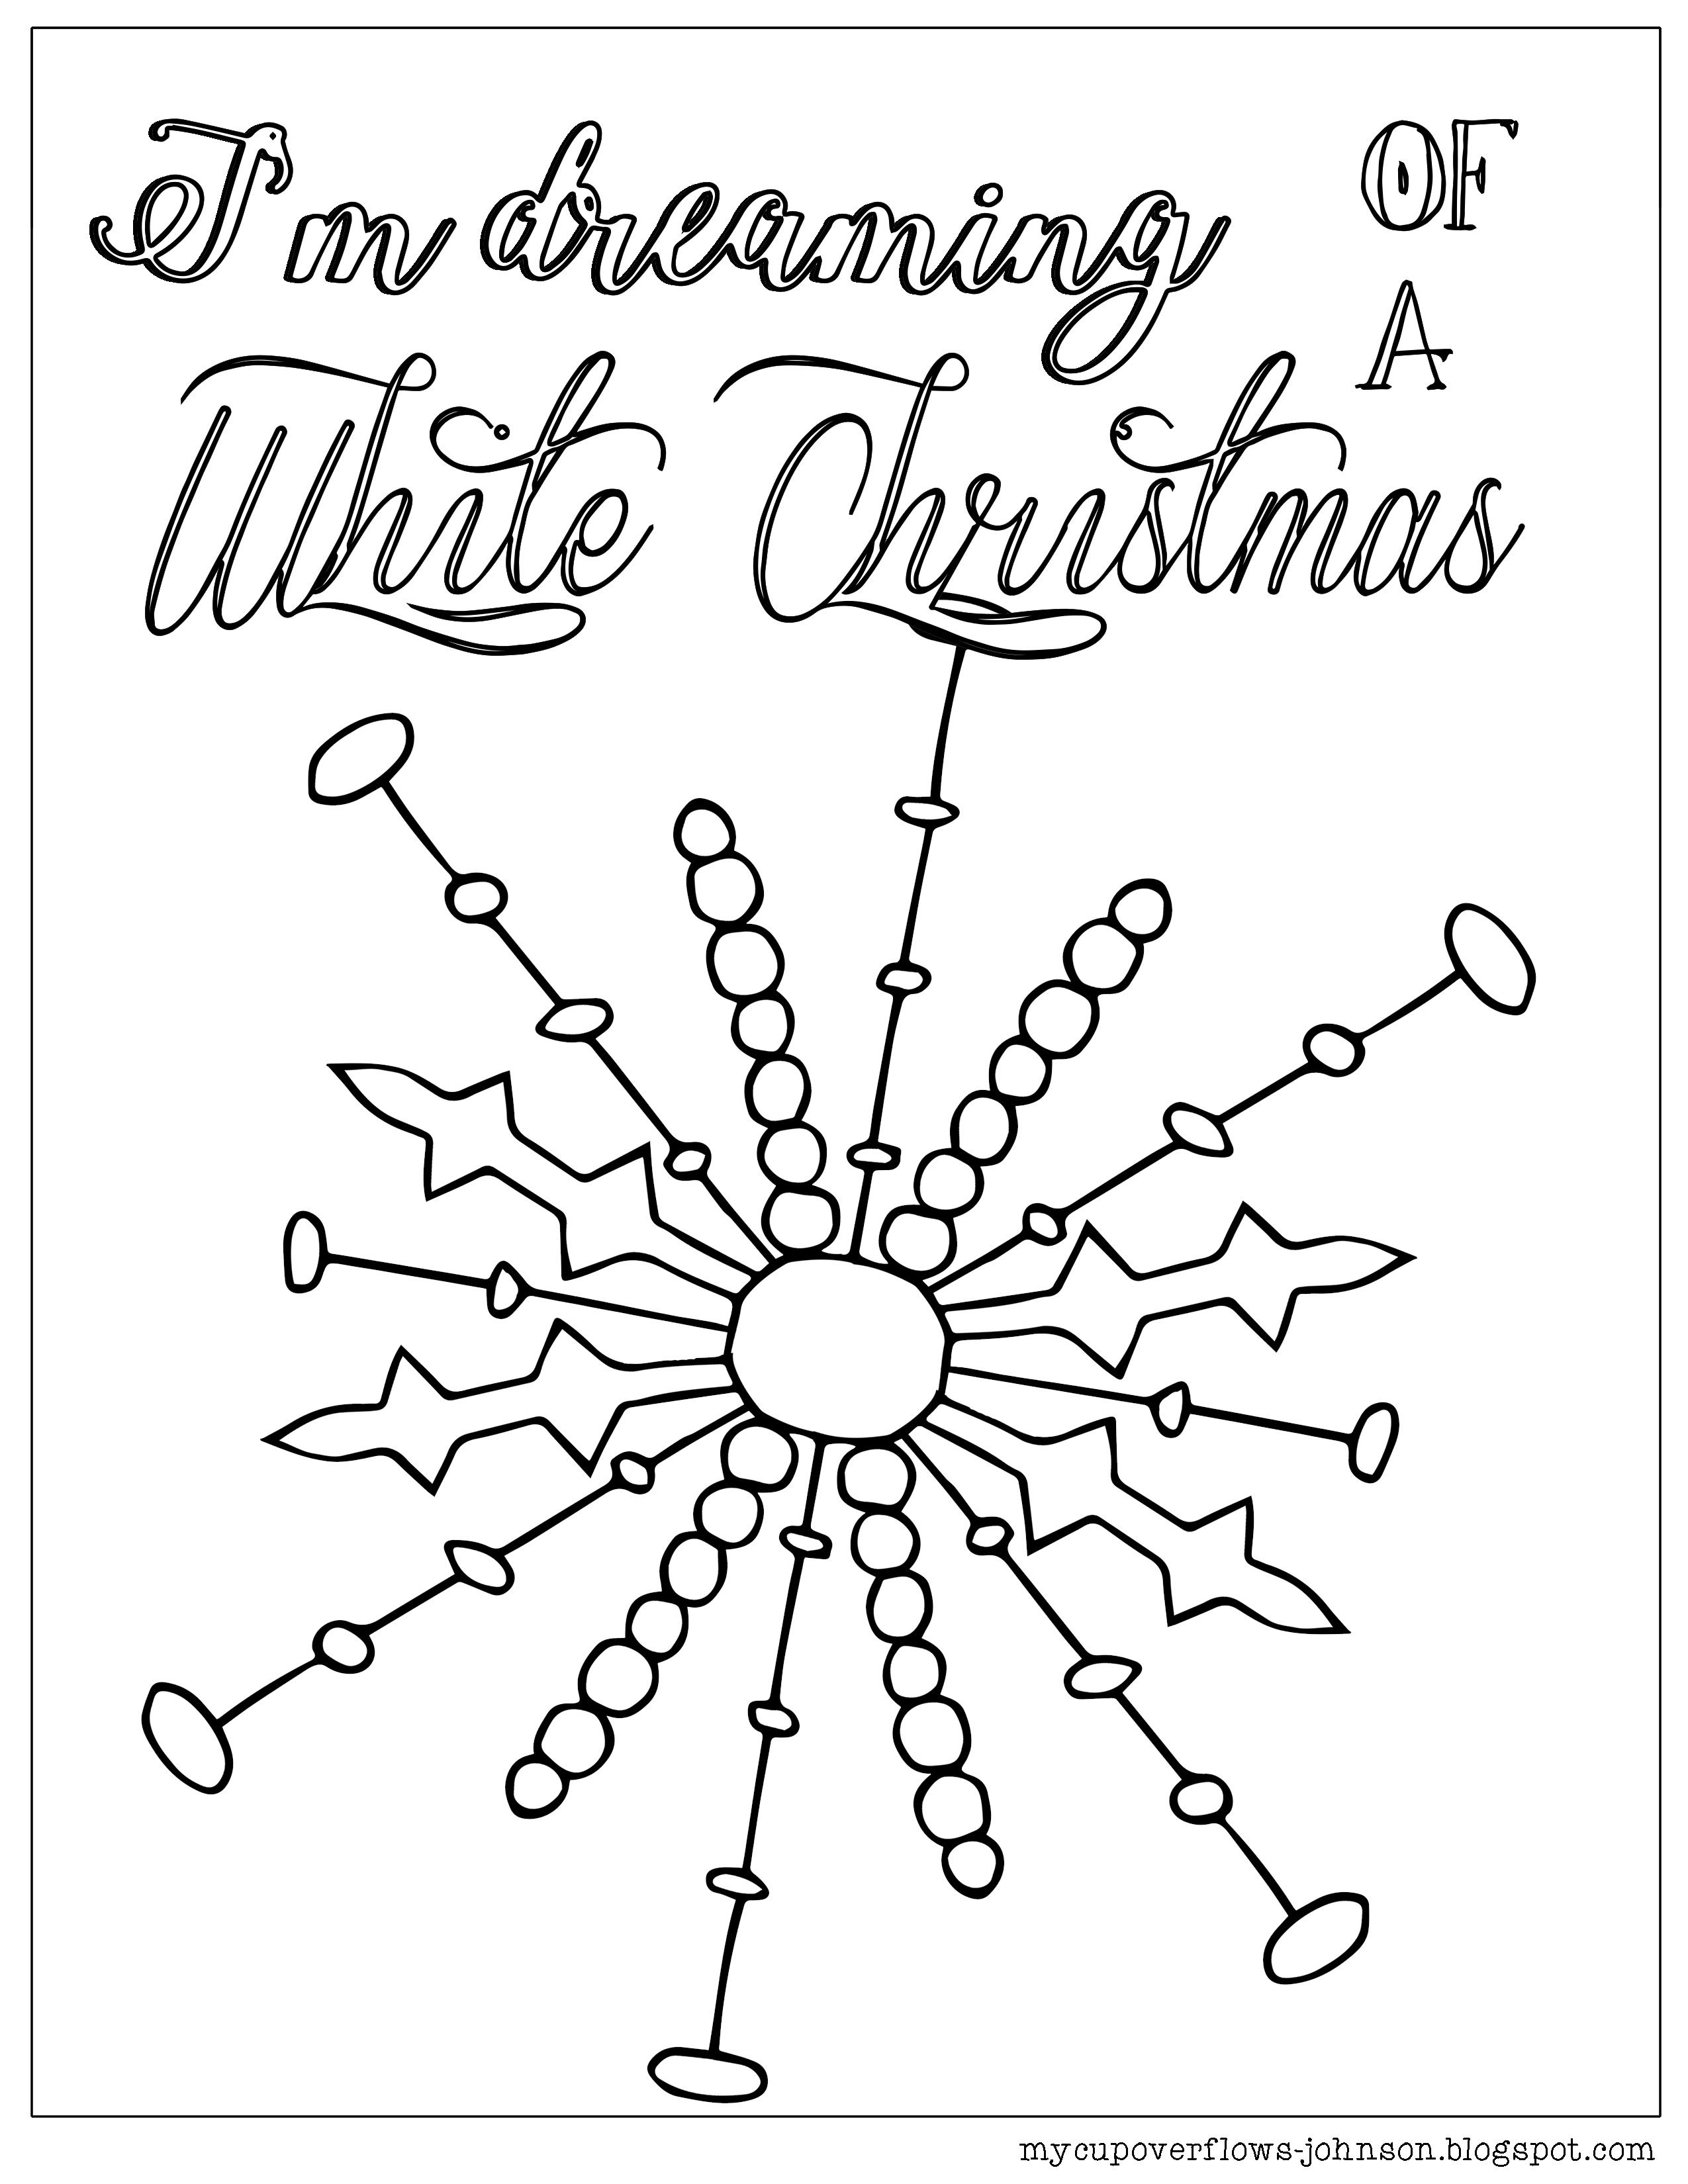 I\'m dreaming of a white Christmas snowflake coloring page | Bible ...